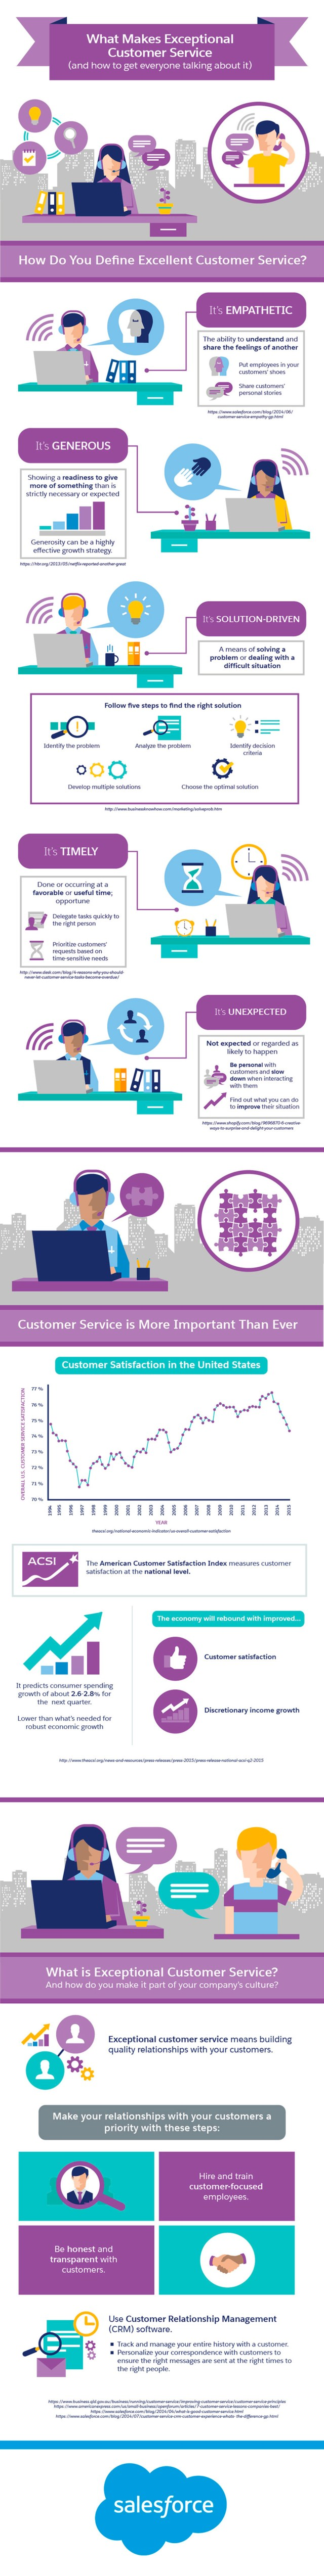 what-makes-exceptional-customer-service-embed-image